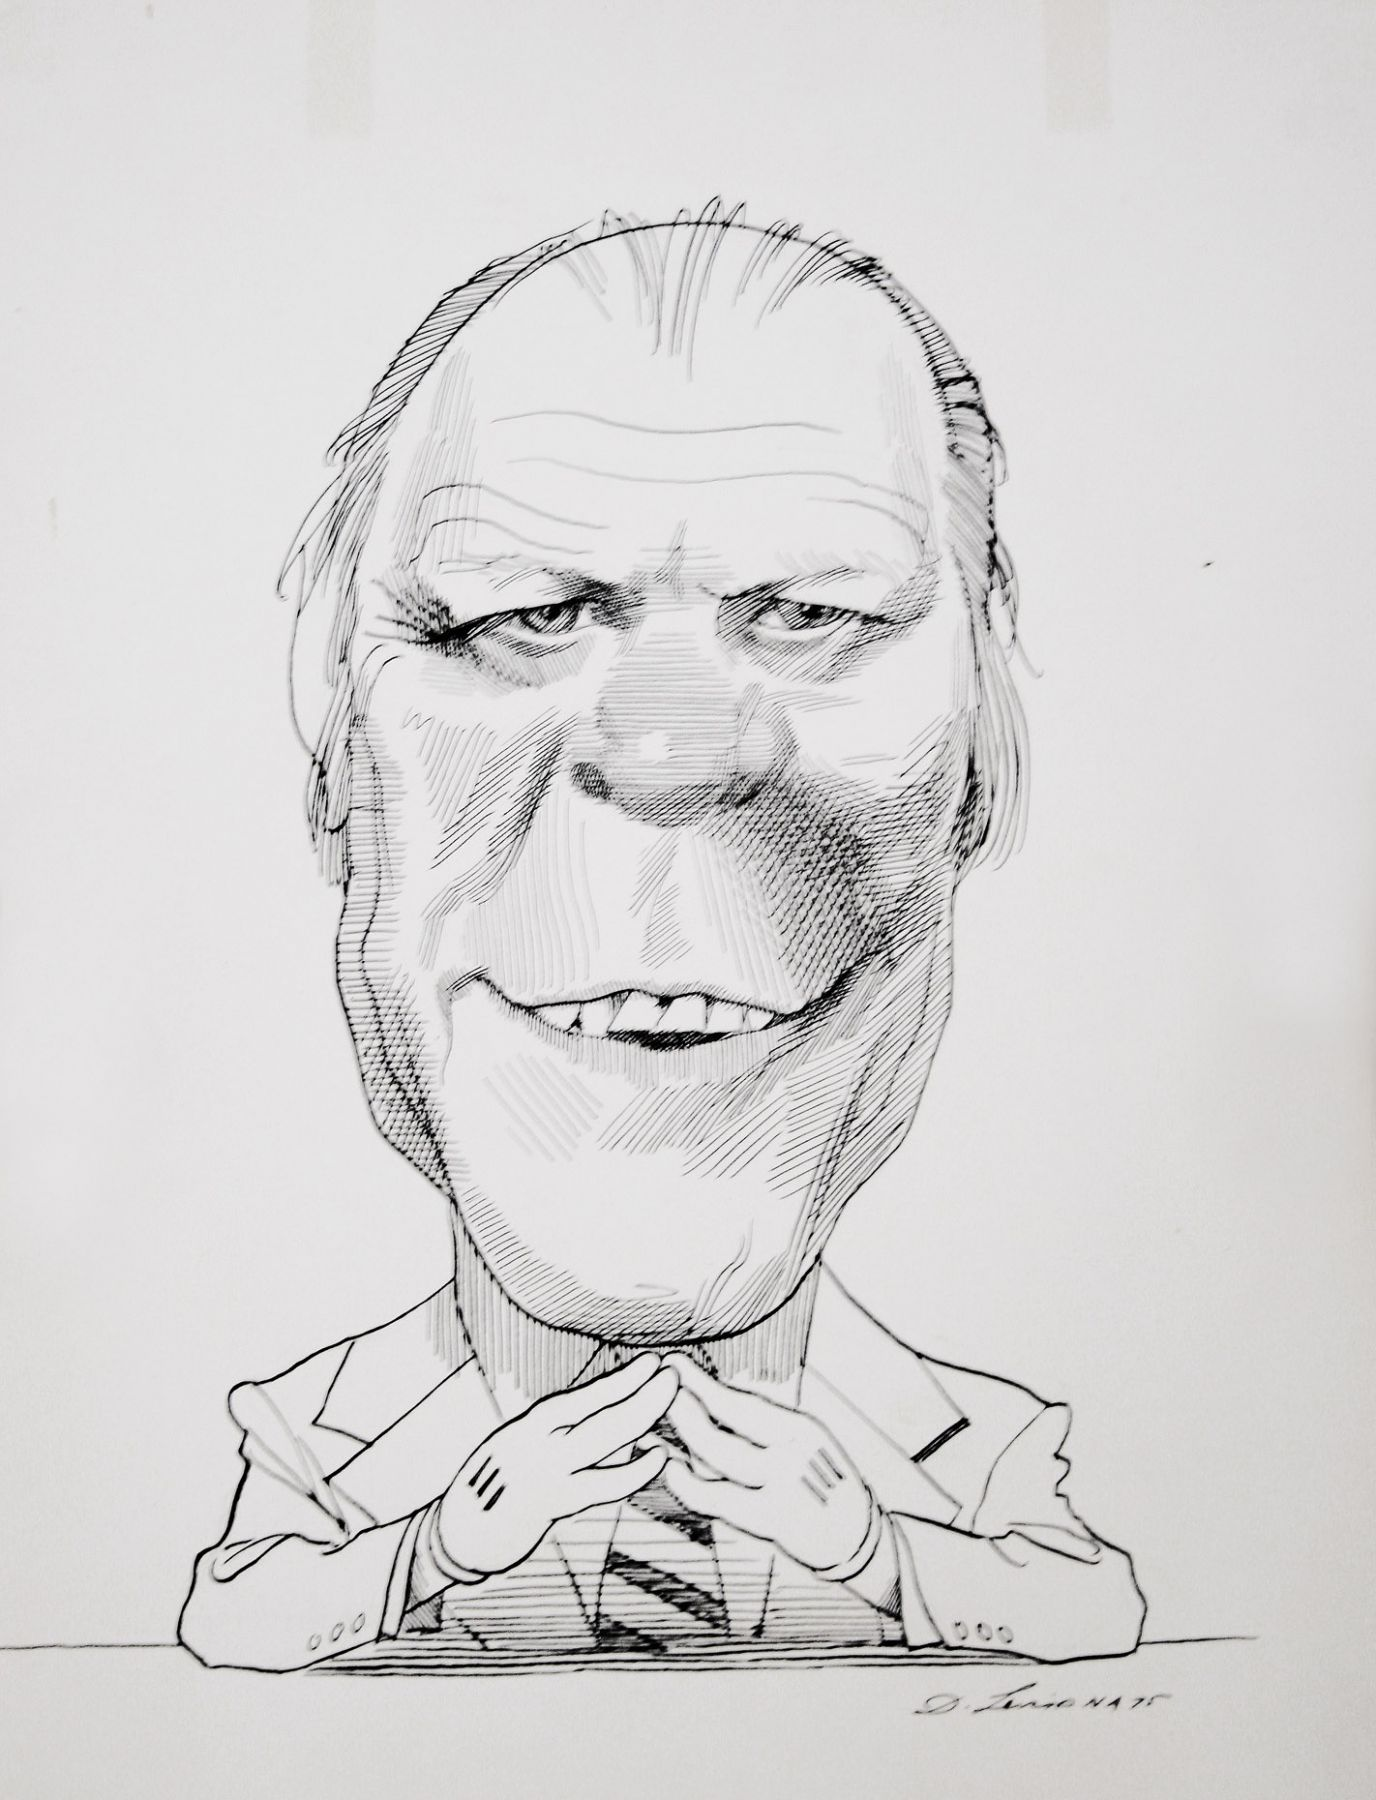 David Levine, Gerald Ford in Mickey Mouse Gloves, 1975, ink on paper, 13 3/4 x 11 inches